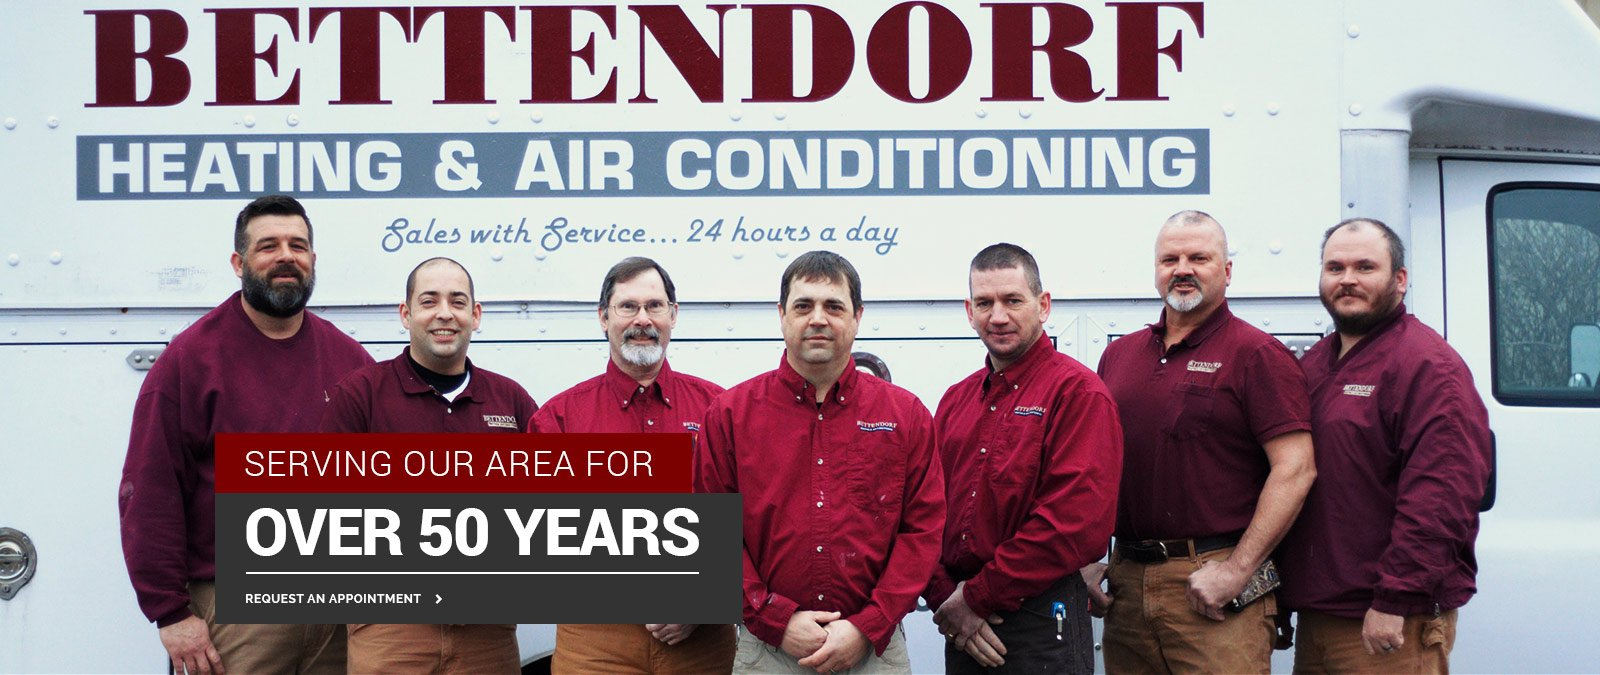 Bettendorf Heating & Air Conditioning